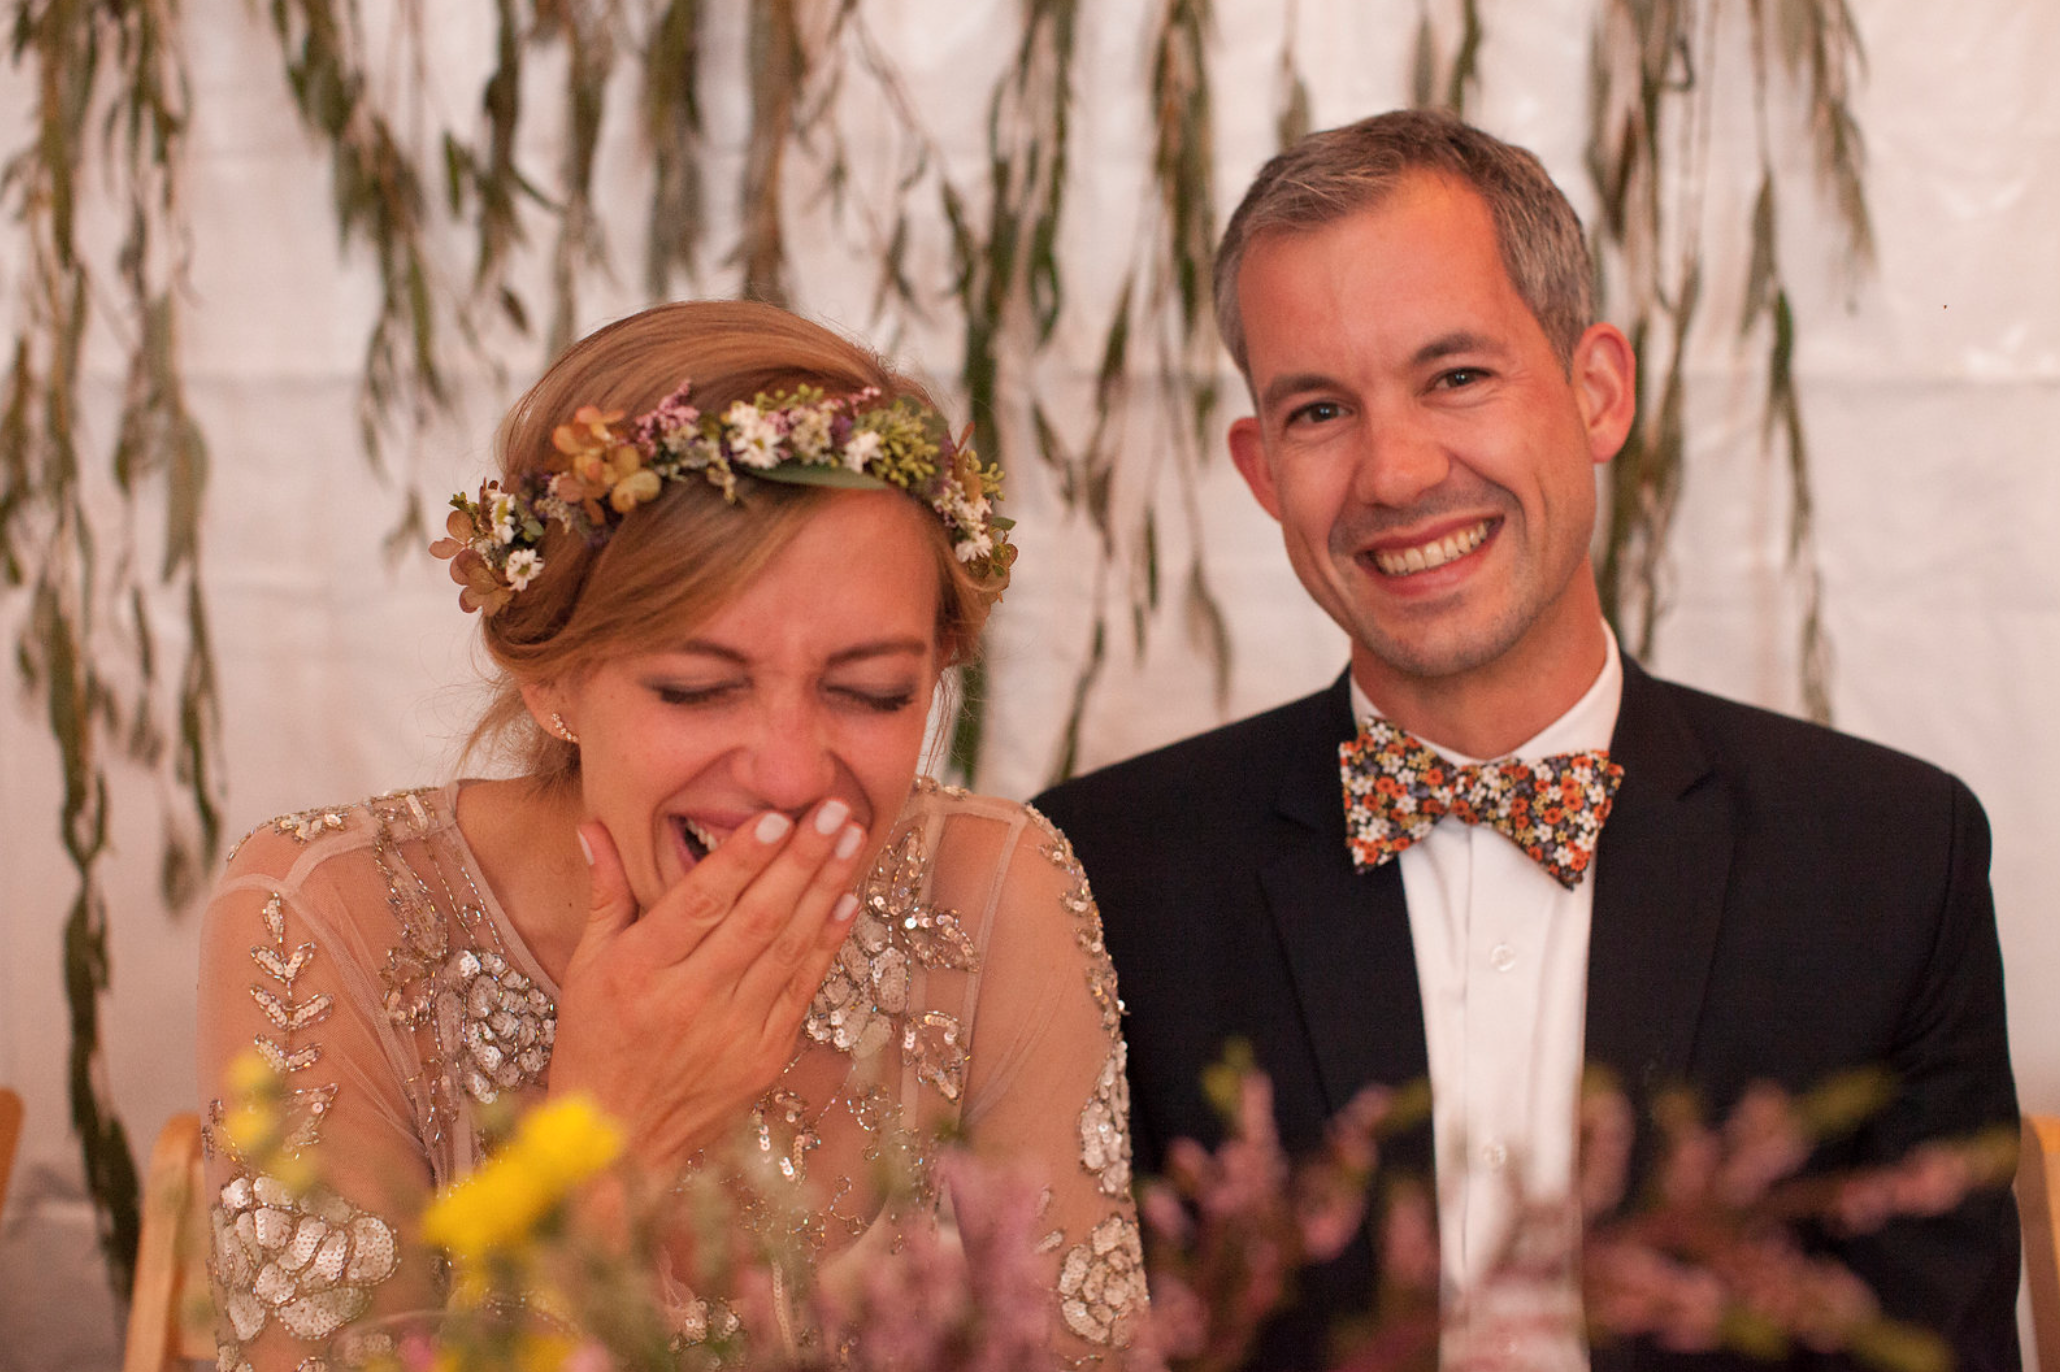 laughing-bride-during-toasts.jpg